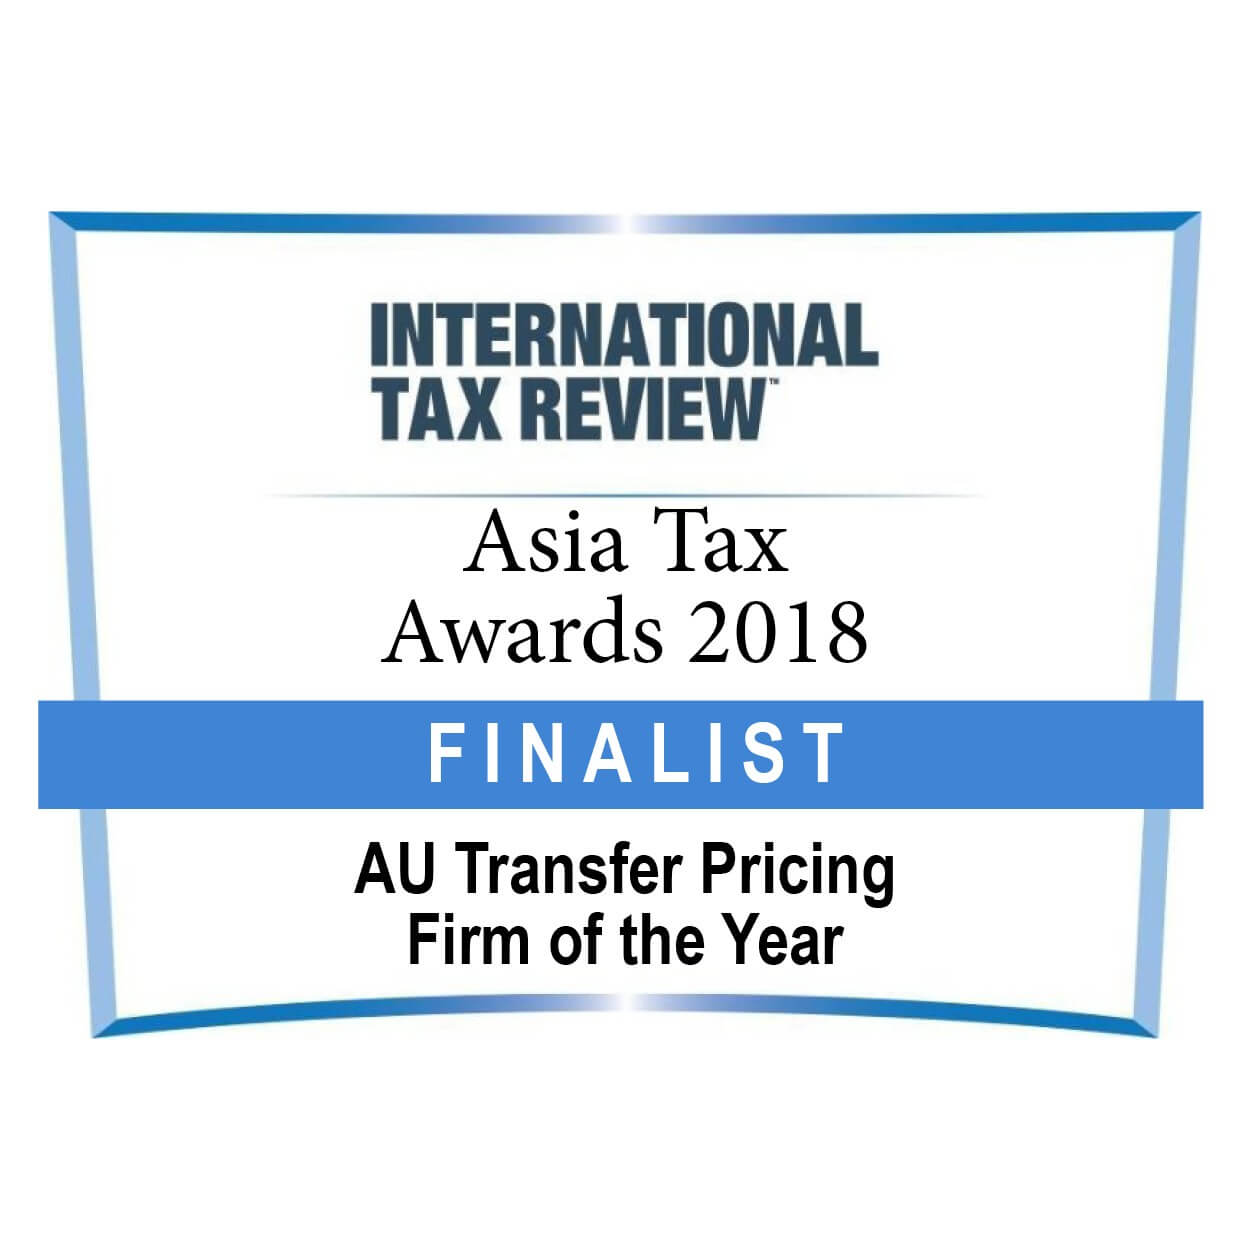 AU TP firm of the Year Asia Tax Awards FINALIST 2018